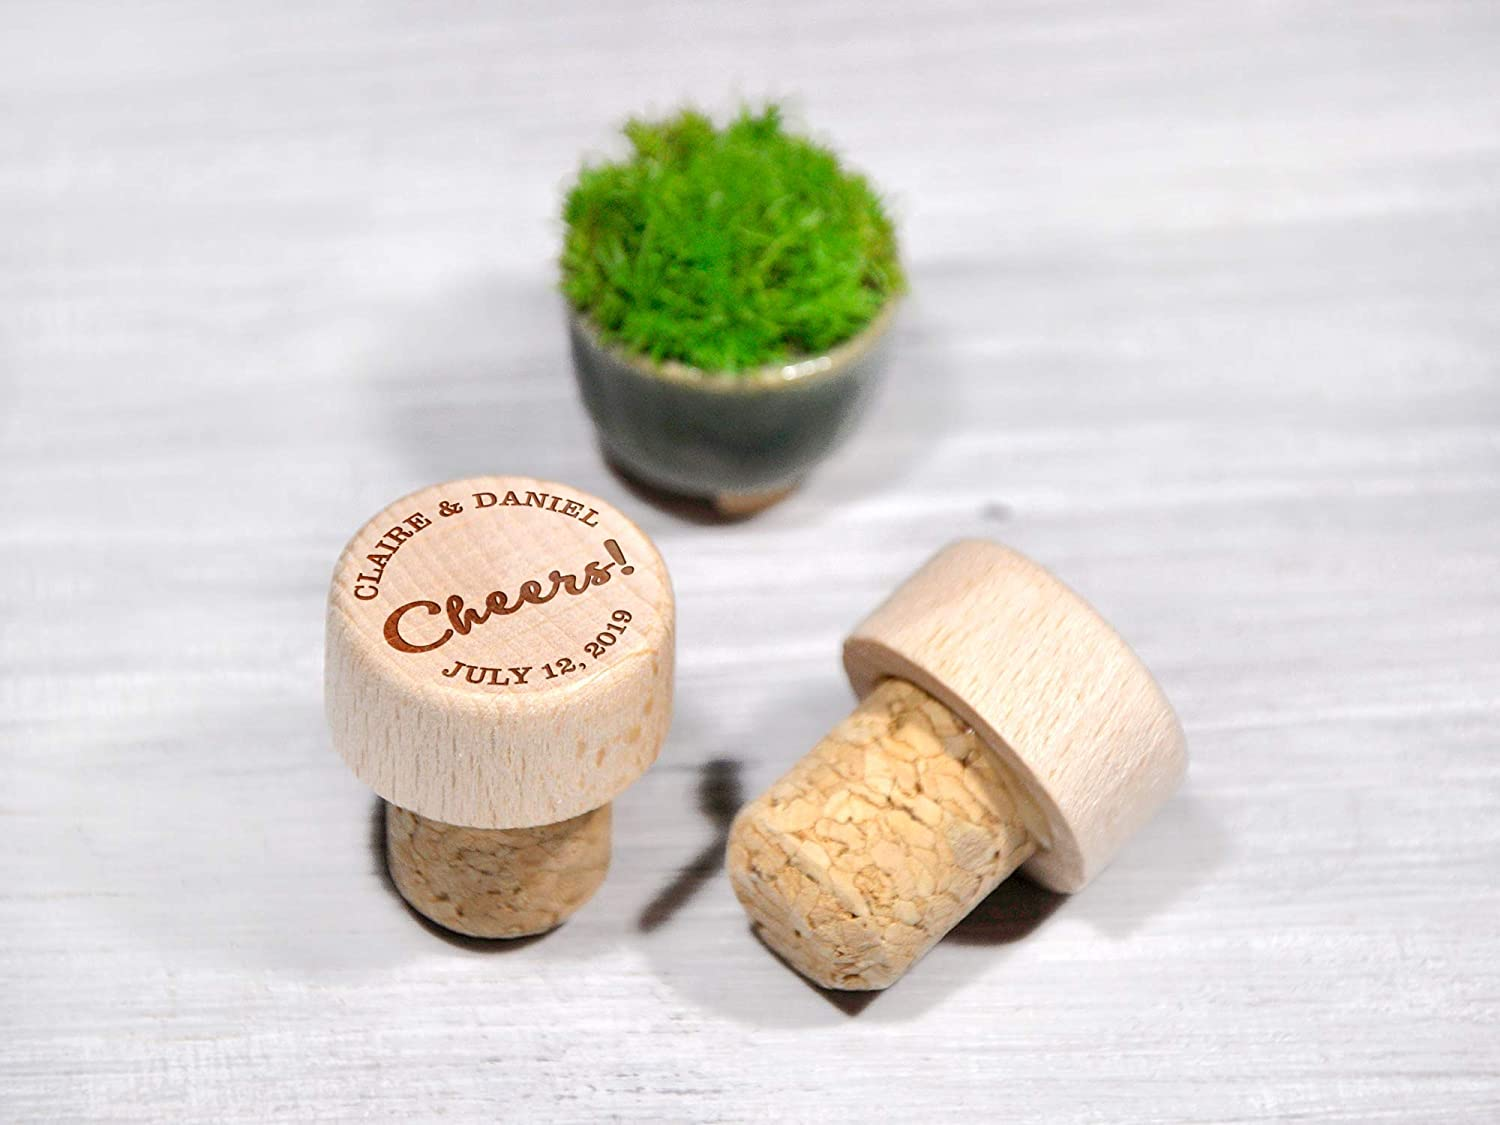 Made in USA Top Quality Stainless Wood. Sip Happens Bottle Stopper Laser Engraved Wood Bottle Stopper Wine Bottle Stopper Gift for Wife